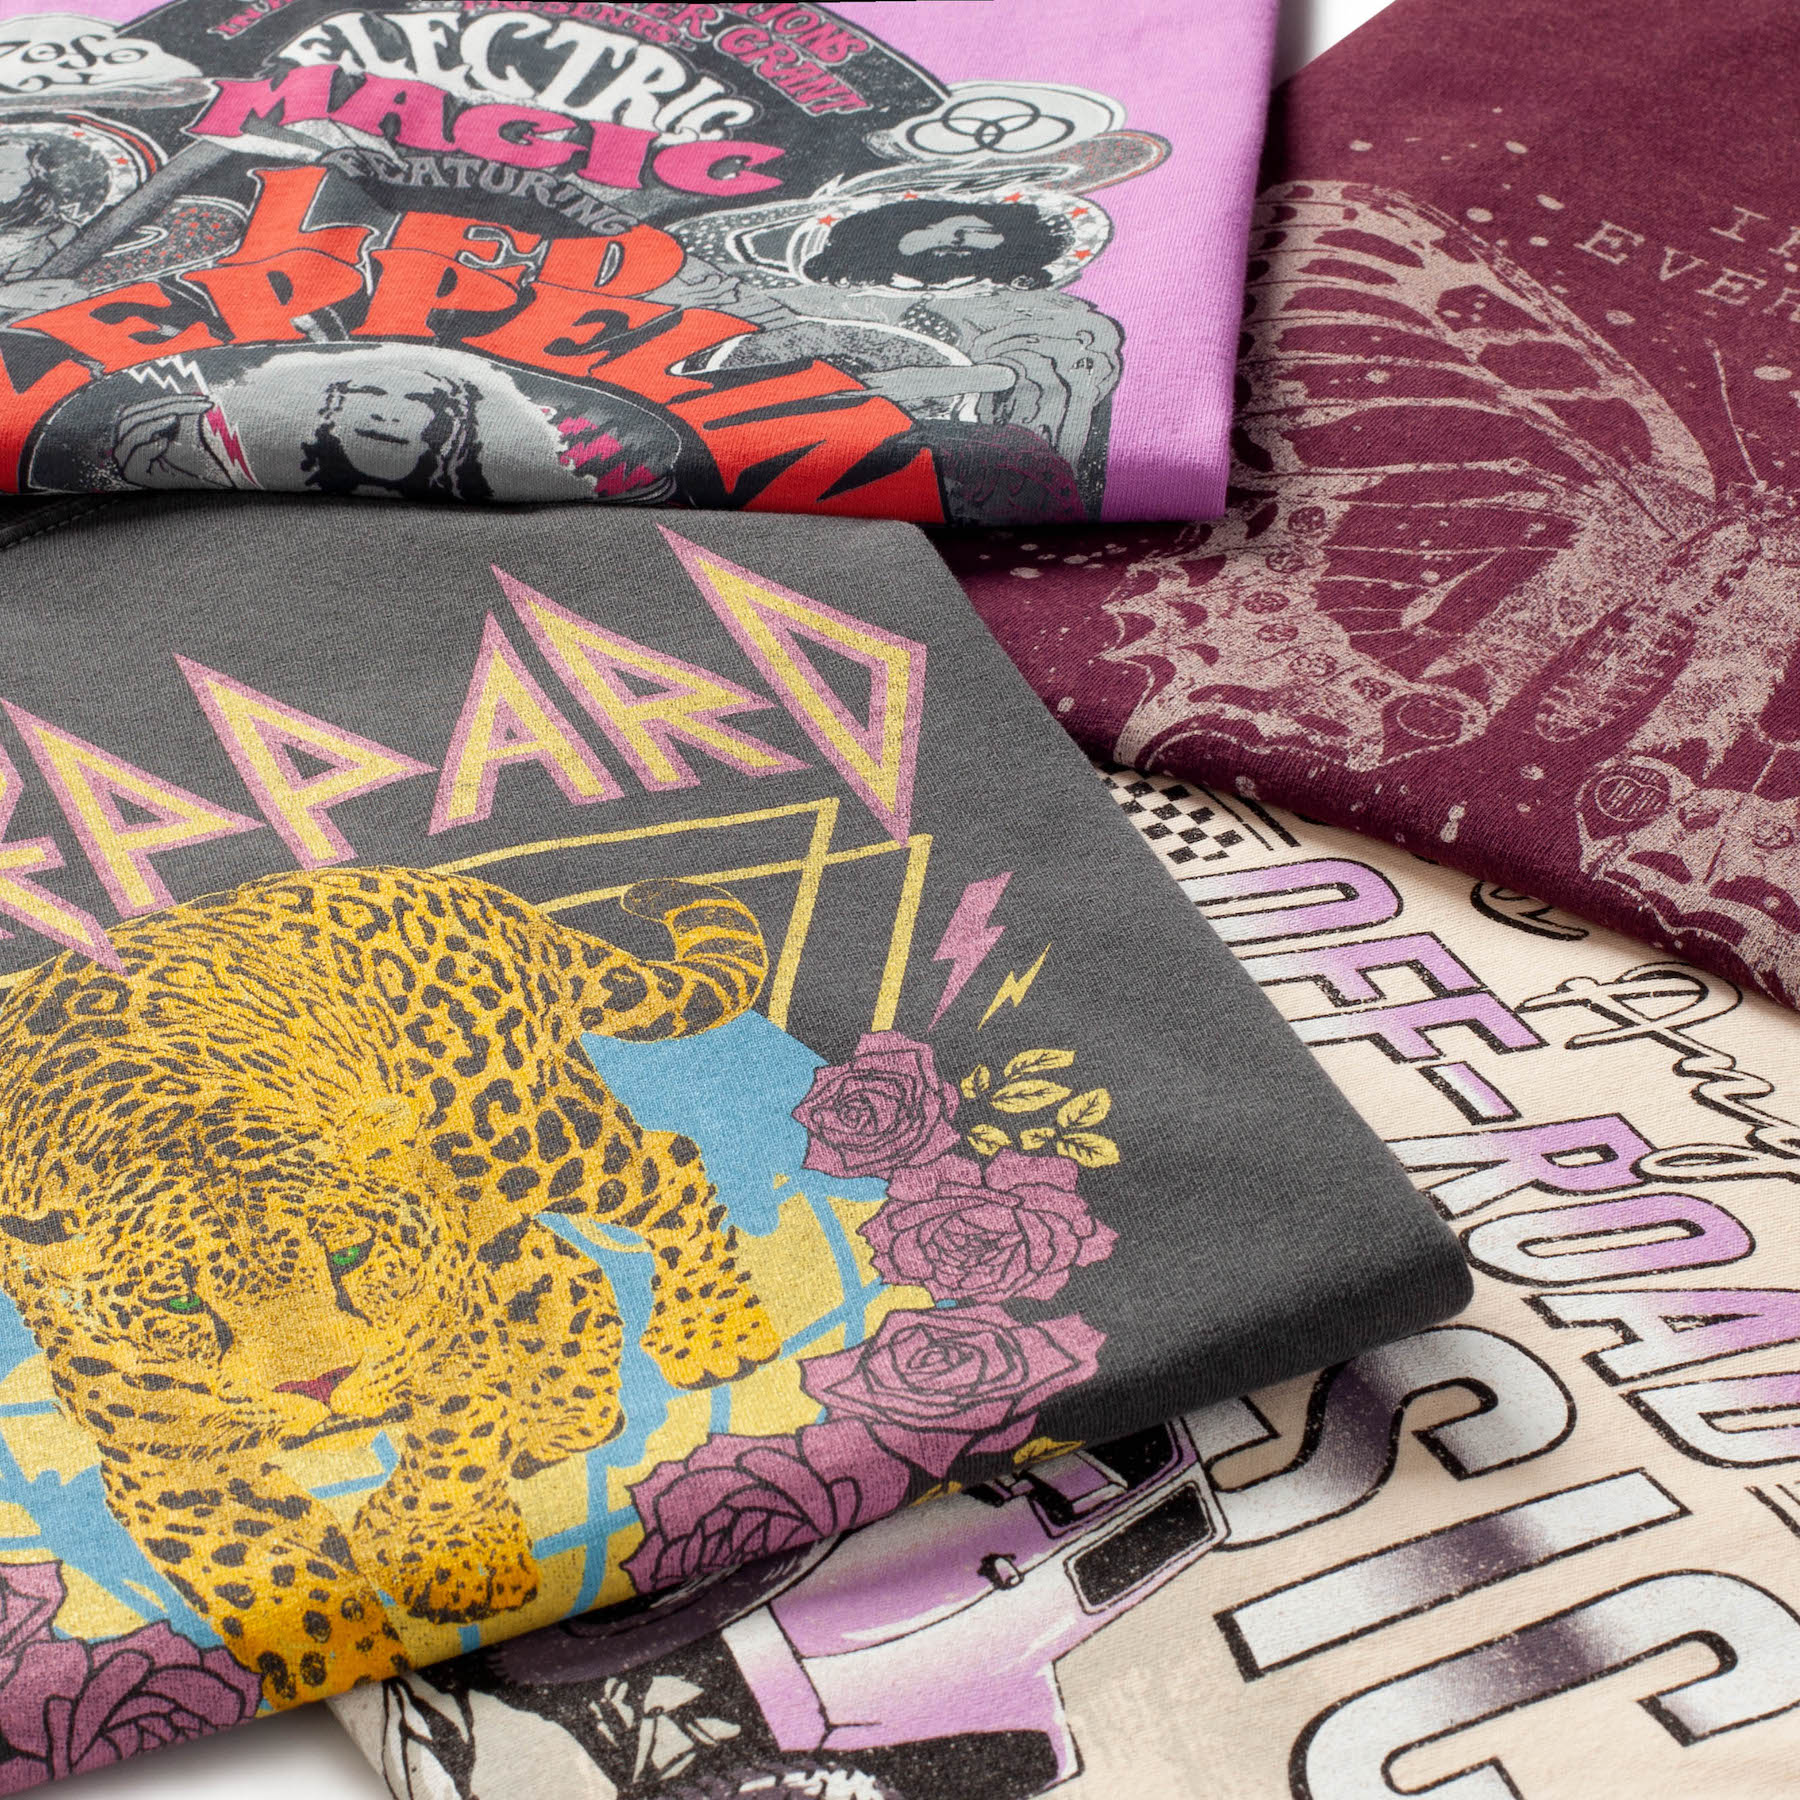 TILLYS-Editorial-Damion-Lloyd-Photography-Laydown-Commercial-Apparel-Product-Clothing-Art-Directed-Los-Angeles-Orange-County-def-leppard-shirts